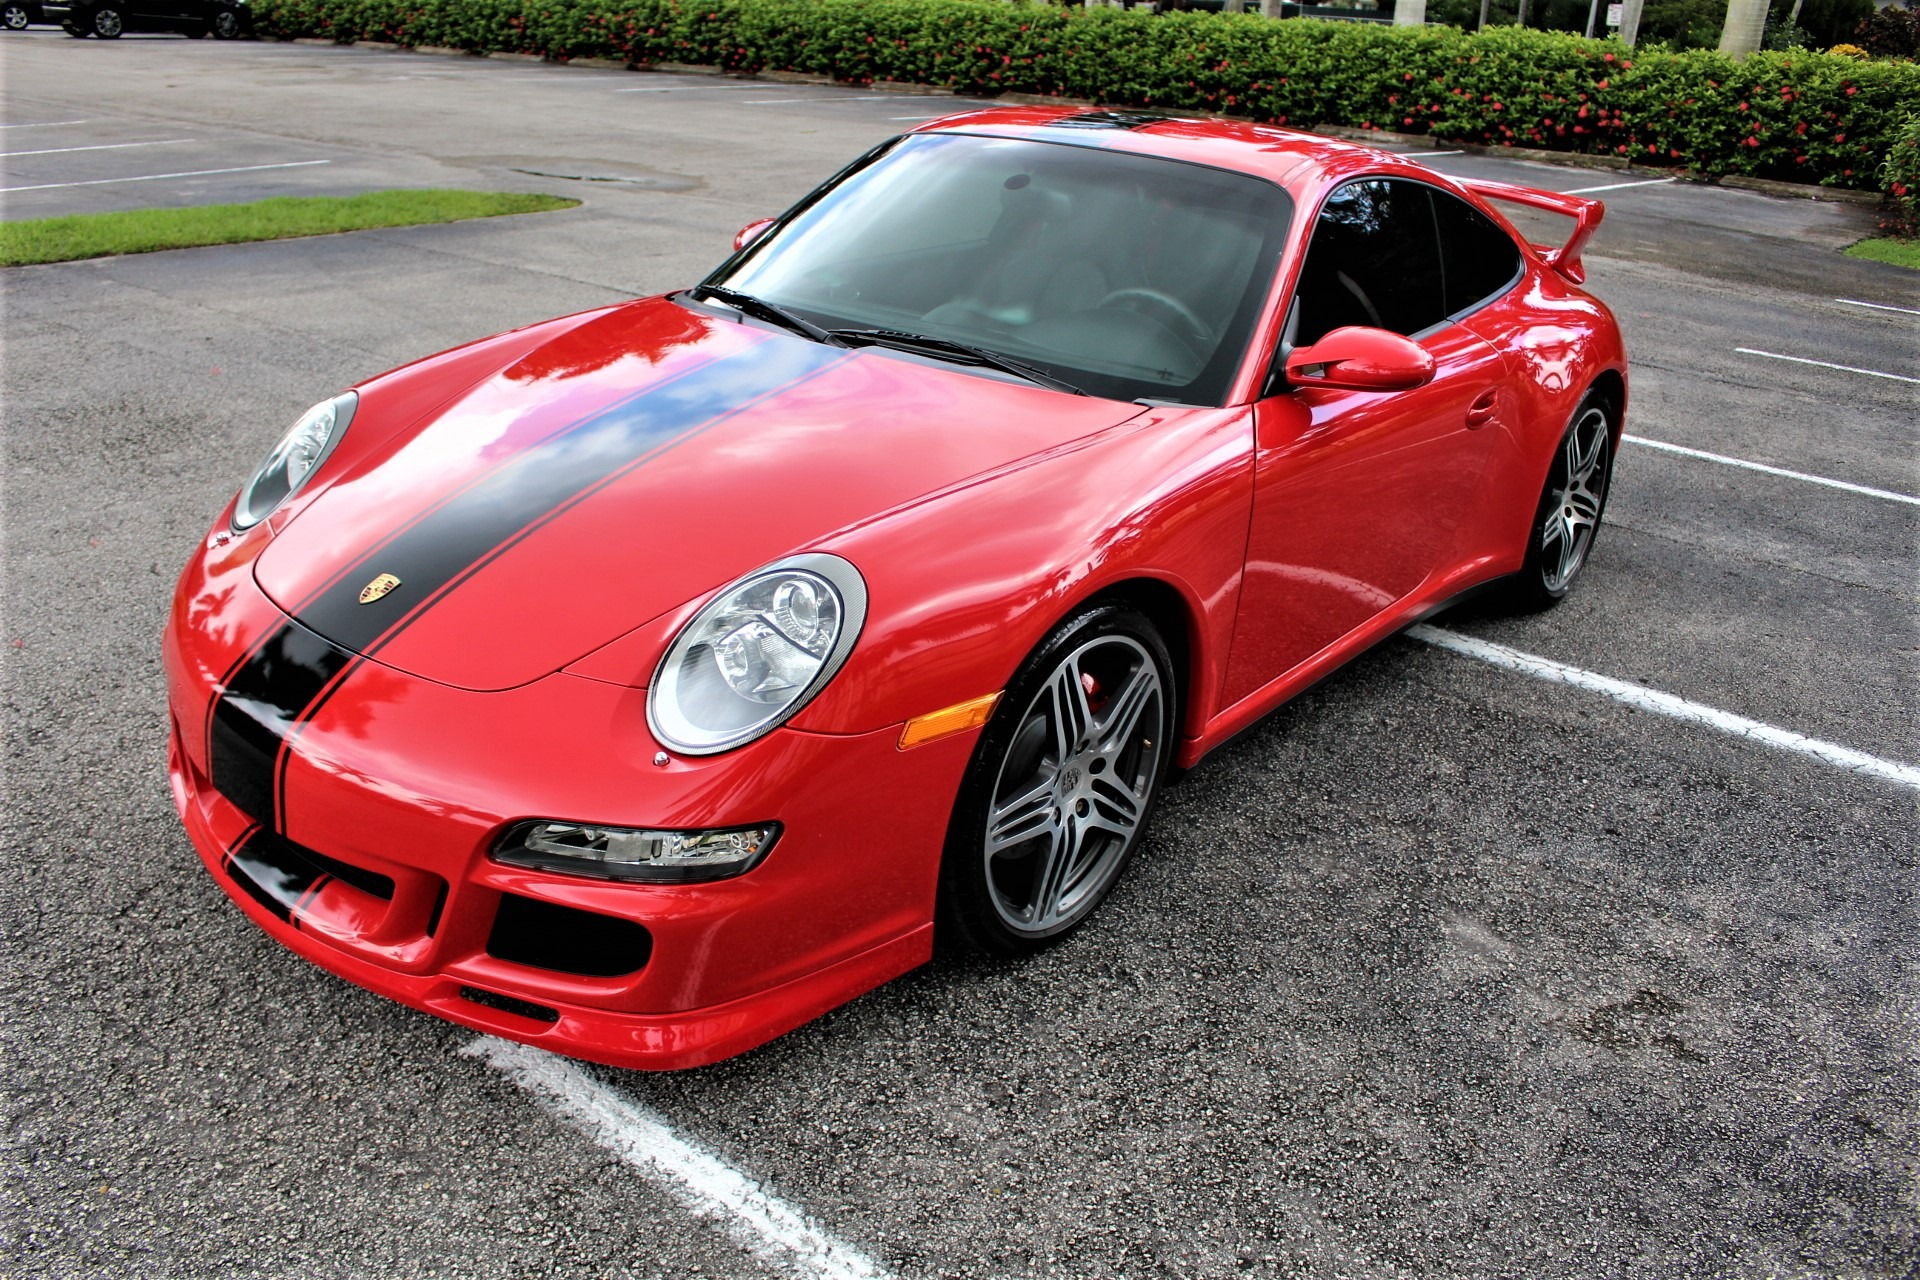 Used 2007 Porsche 911 Carrera 4S for sale $57,850 at The Gables Sports Cars in Miami FL 33146 3